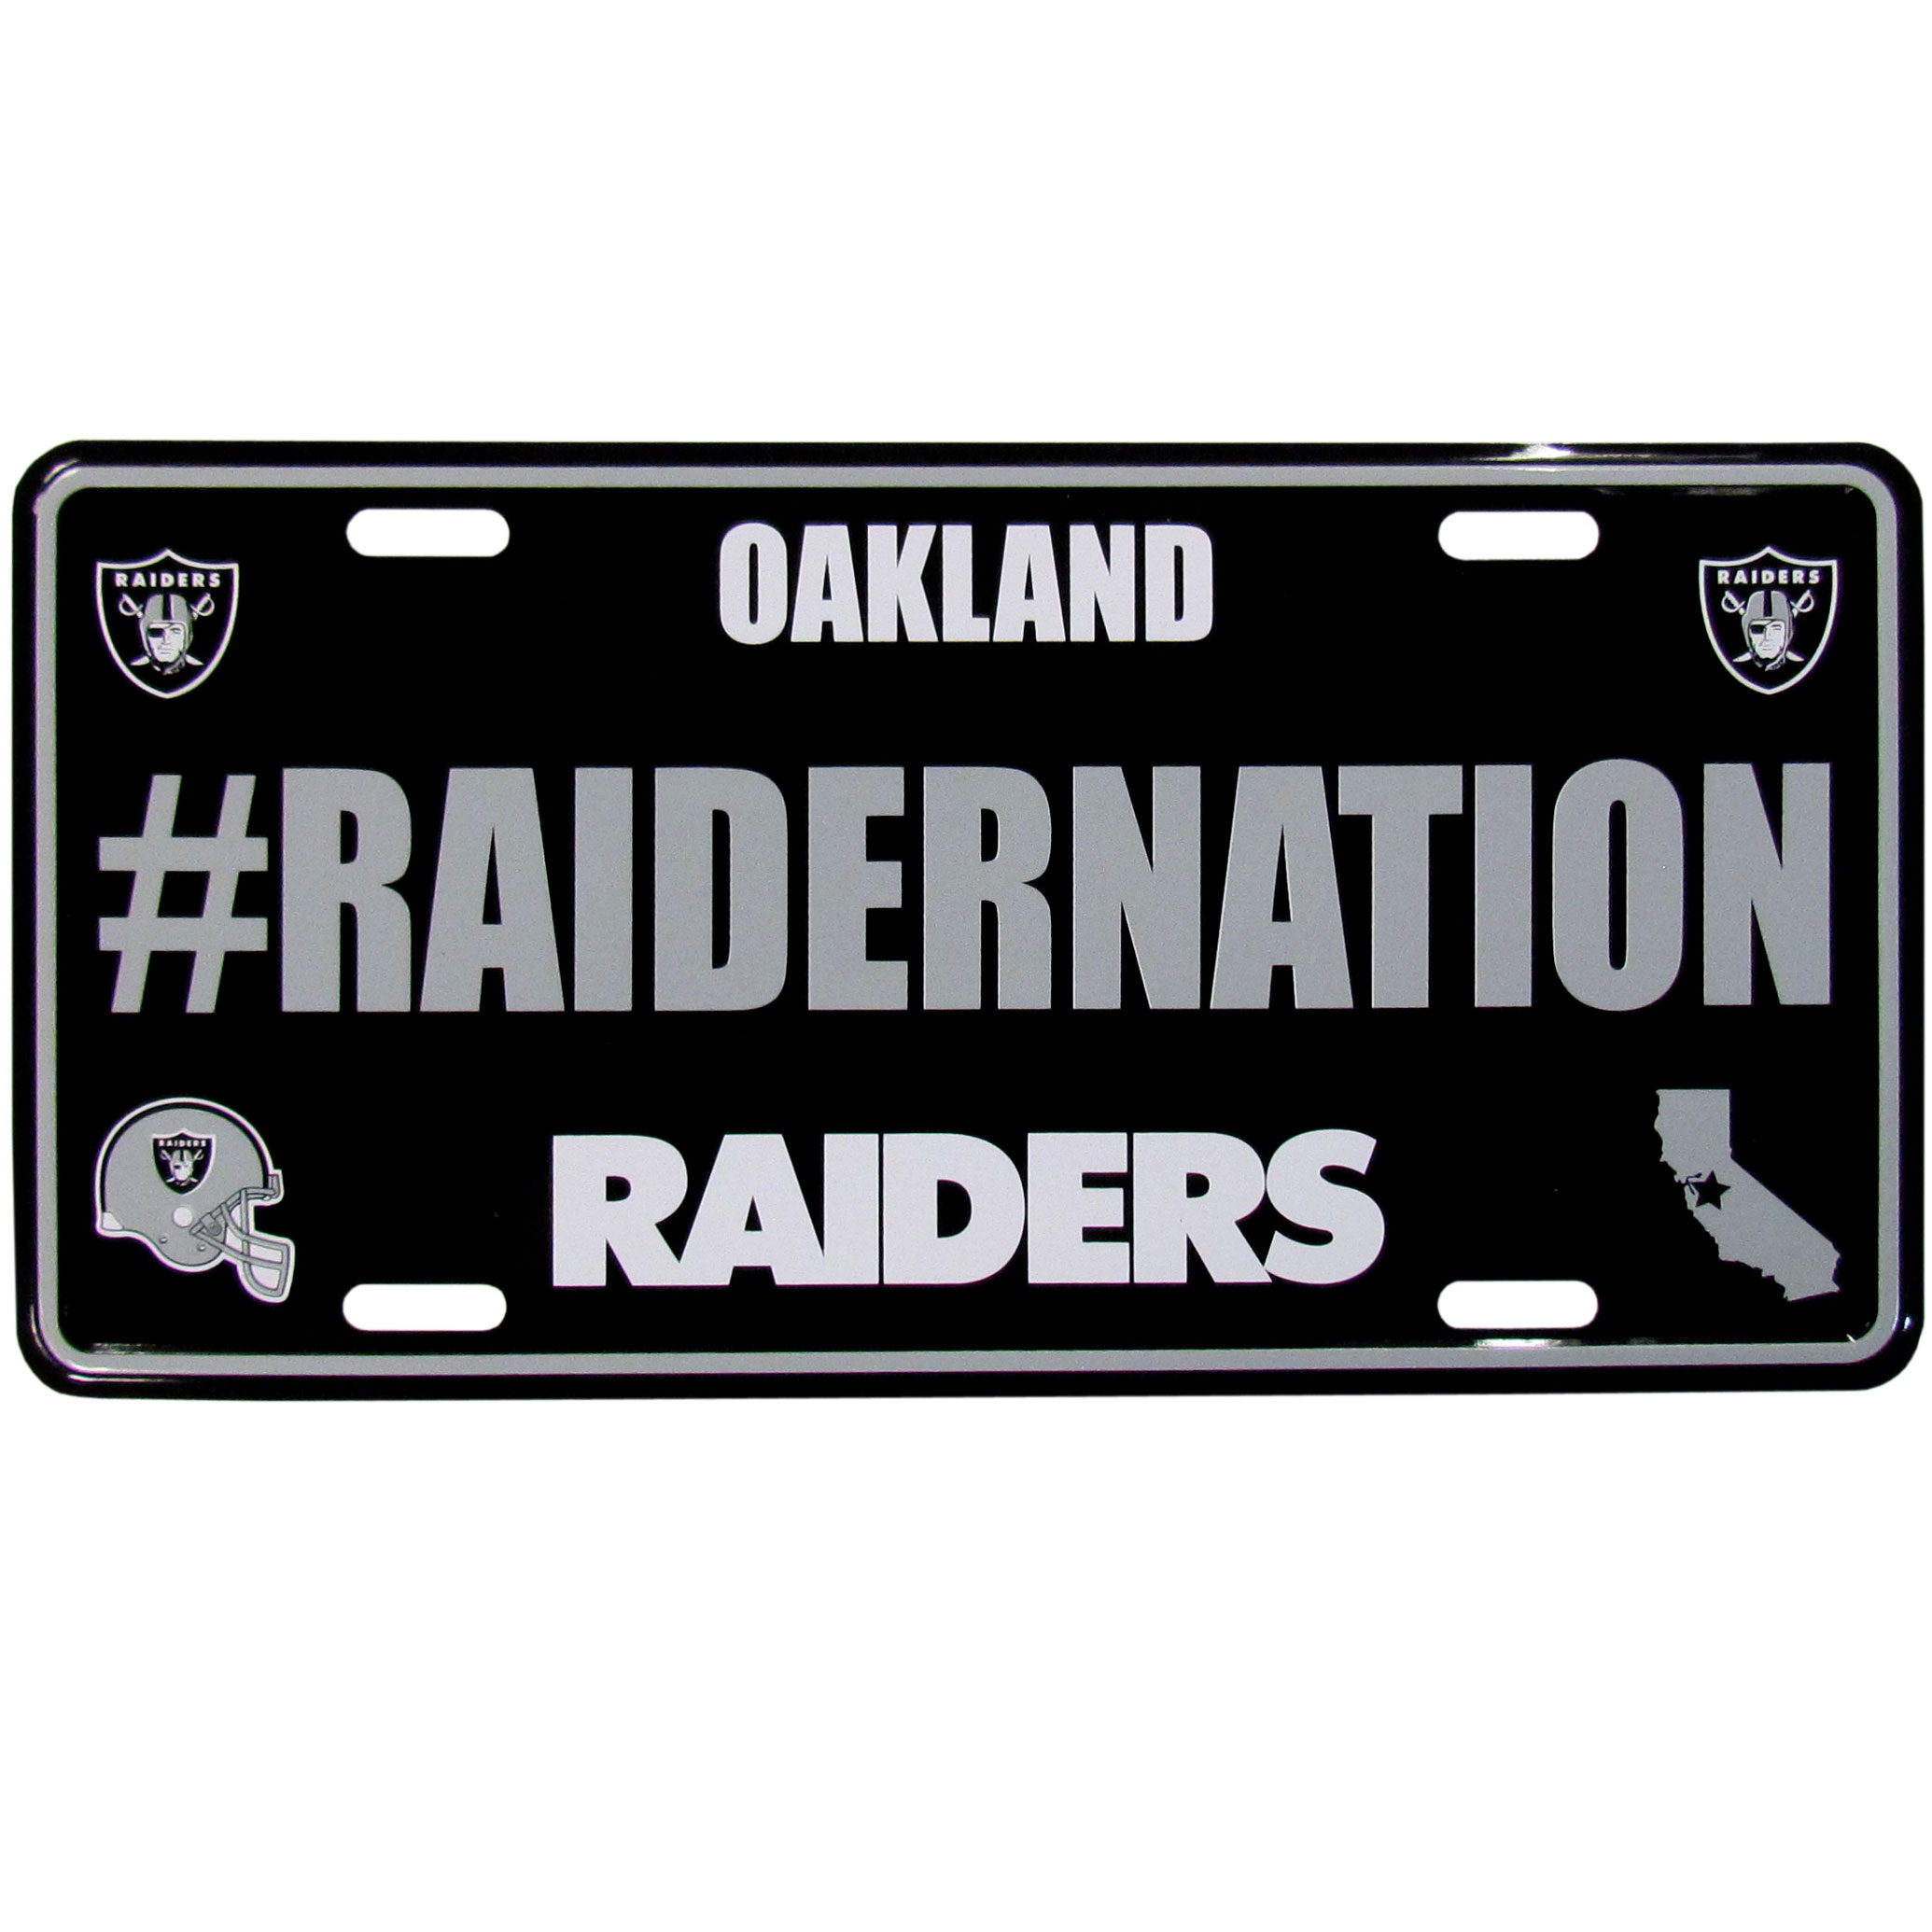 Oakland Raiders Hashtag License Plate - It's a hashtag world! Celebrate the Oakland Raiders with this stamped aluminum license plate with the most popular team hashtag! This bright license plate will look great on your vehicle or mounted in your fan cave.